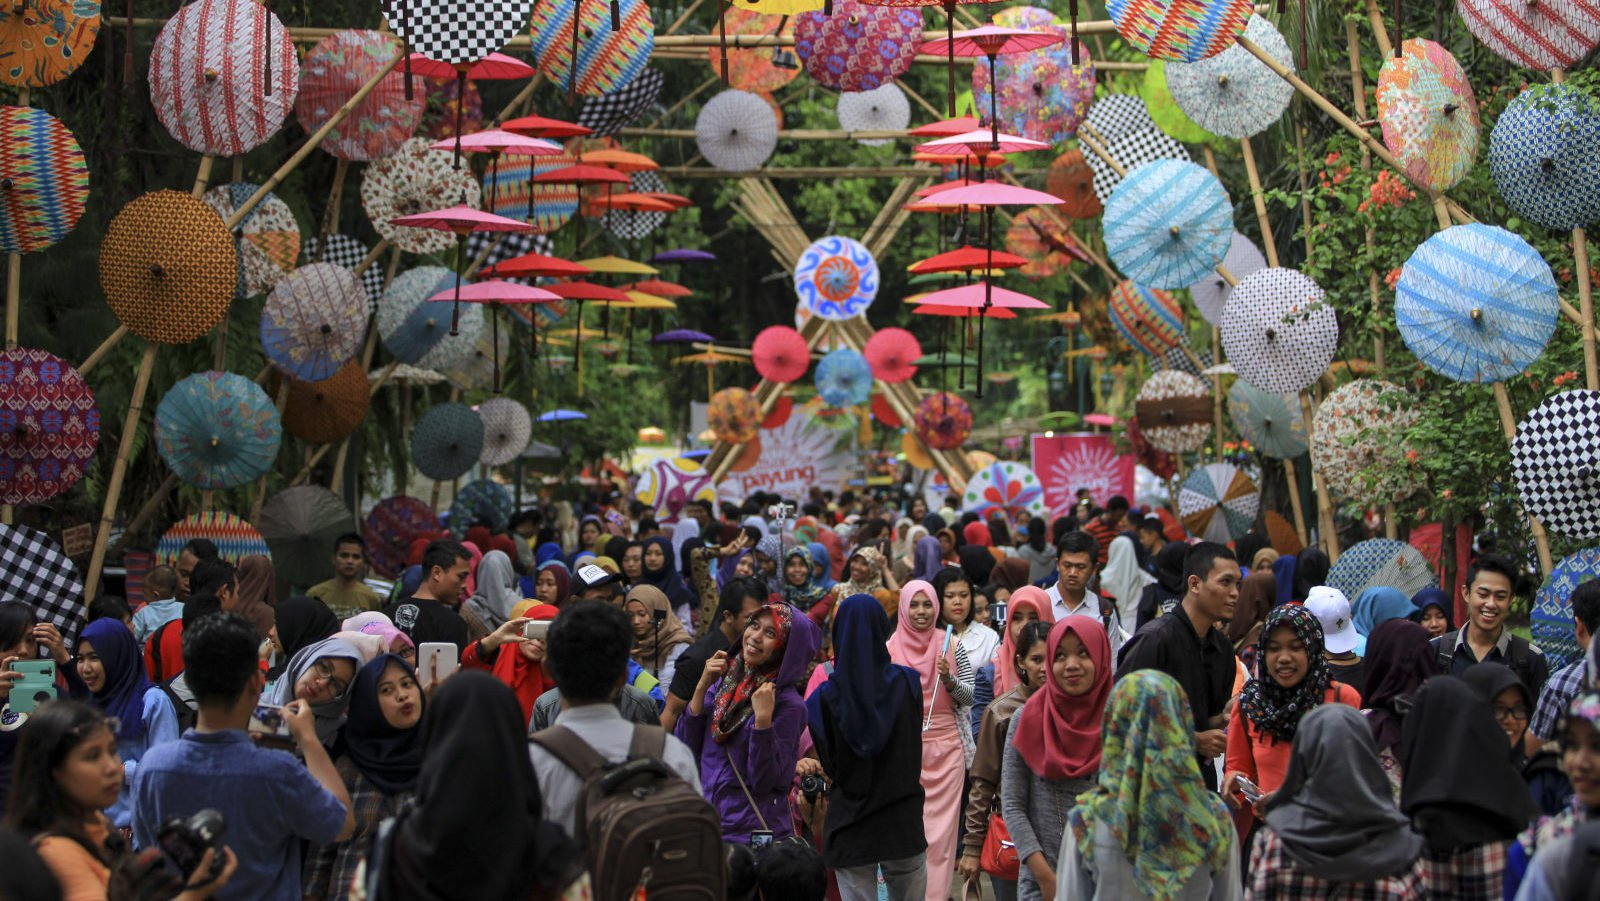 the crowd due to umbrella event in central java